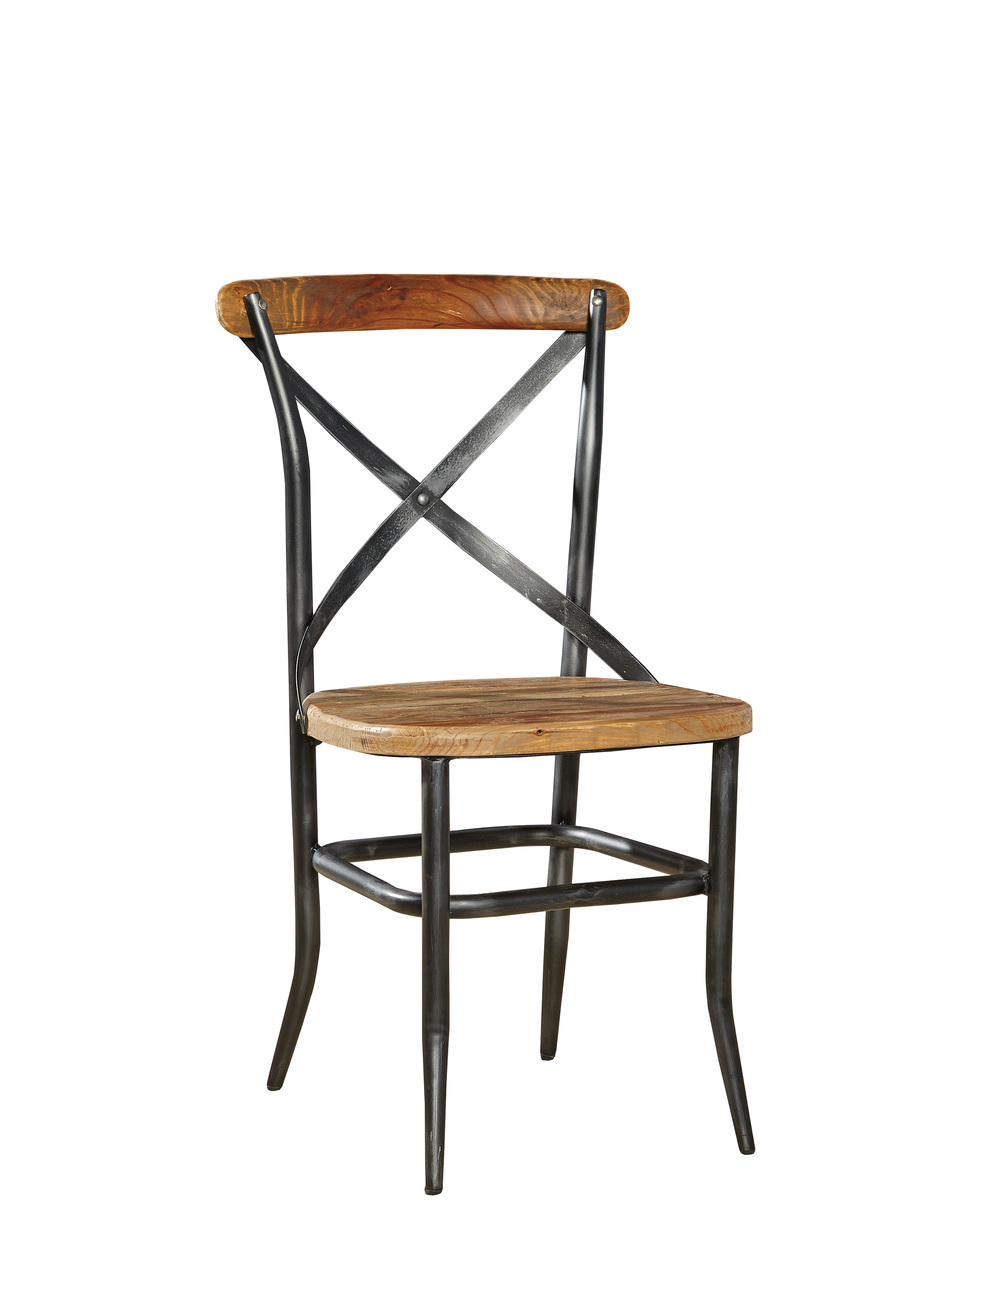 Furniture Classics Limited - Metal and Wood Cross Chair